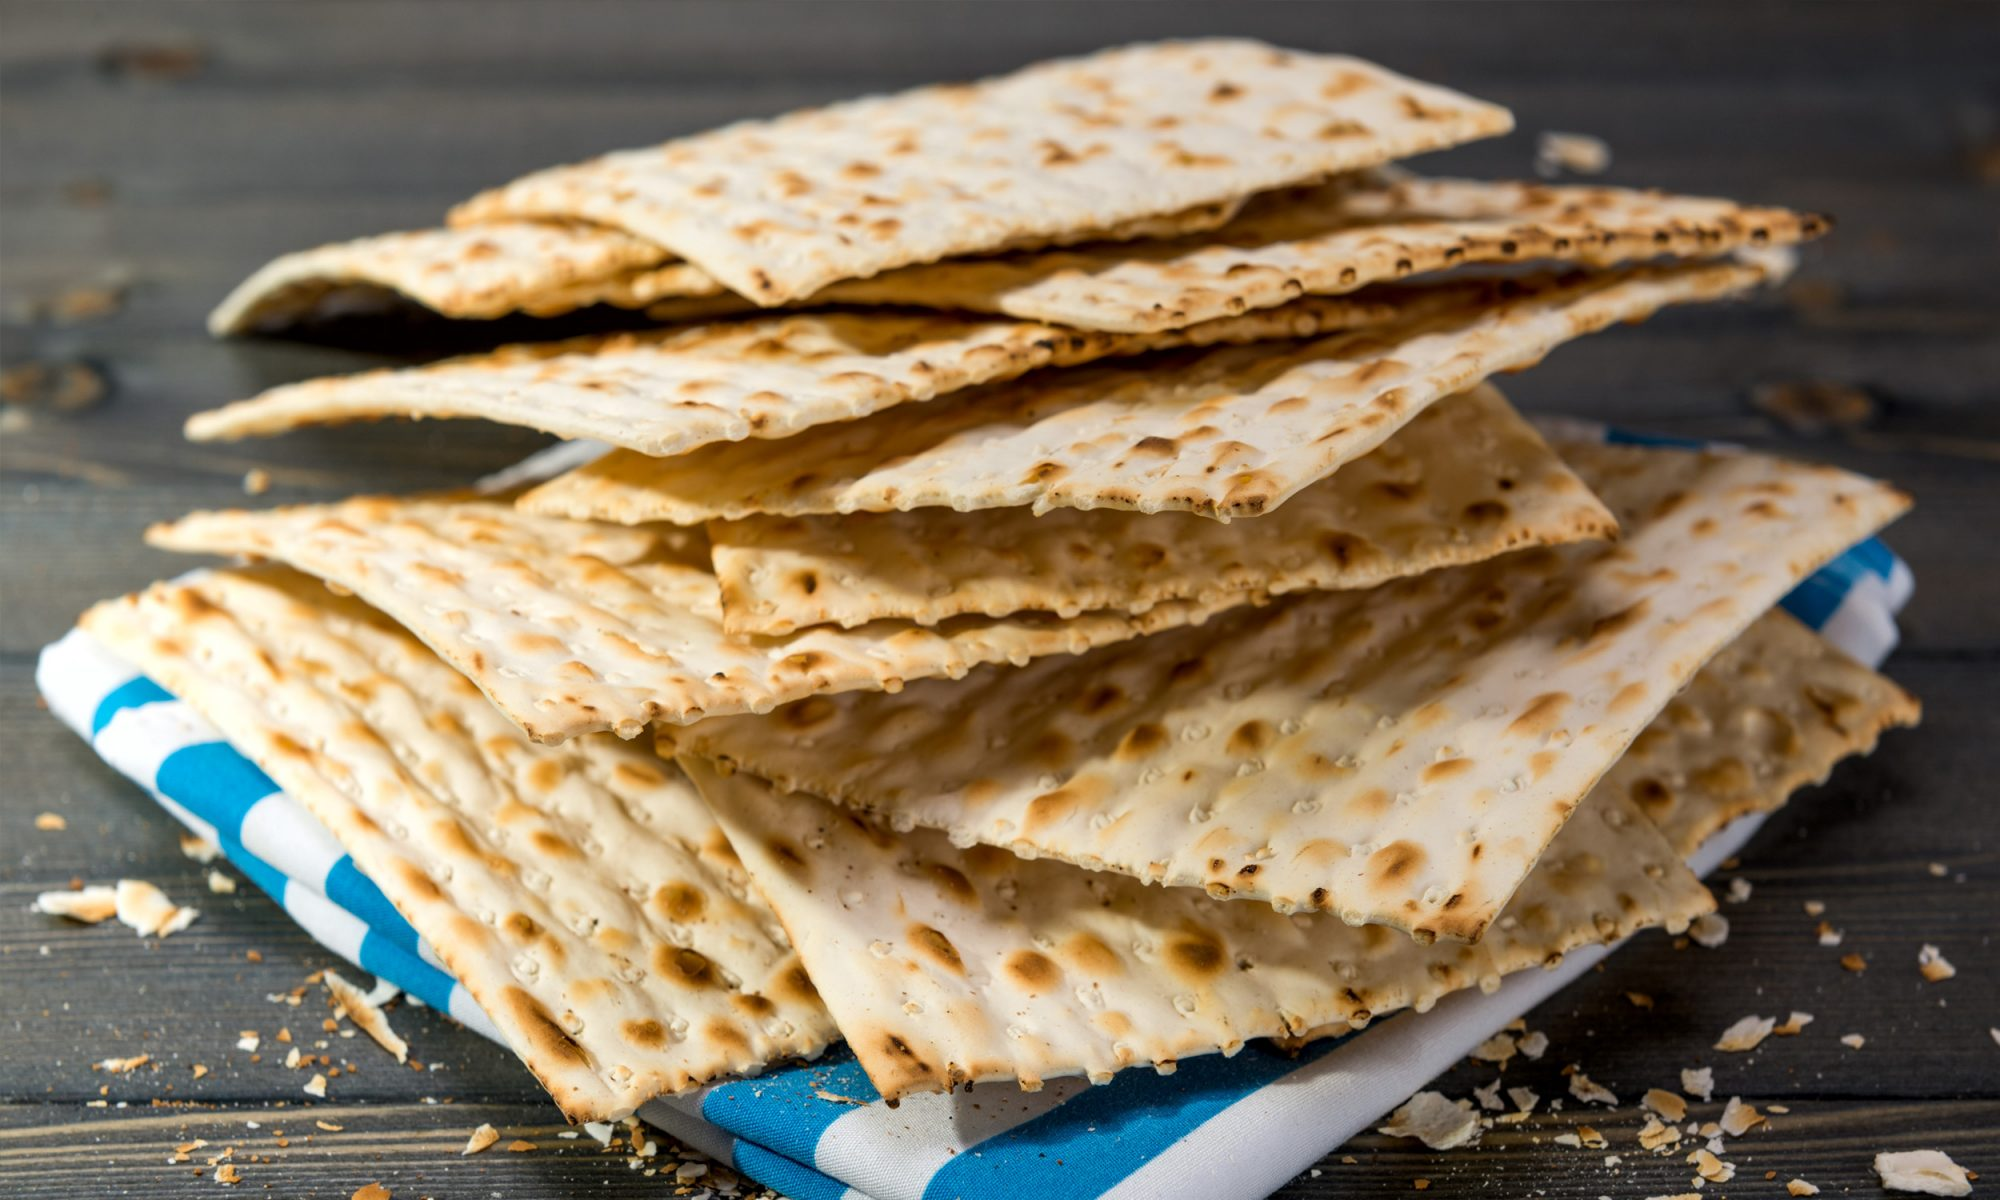 Make Matzoquiles with Your Leftover Matzo from Passover